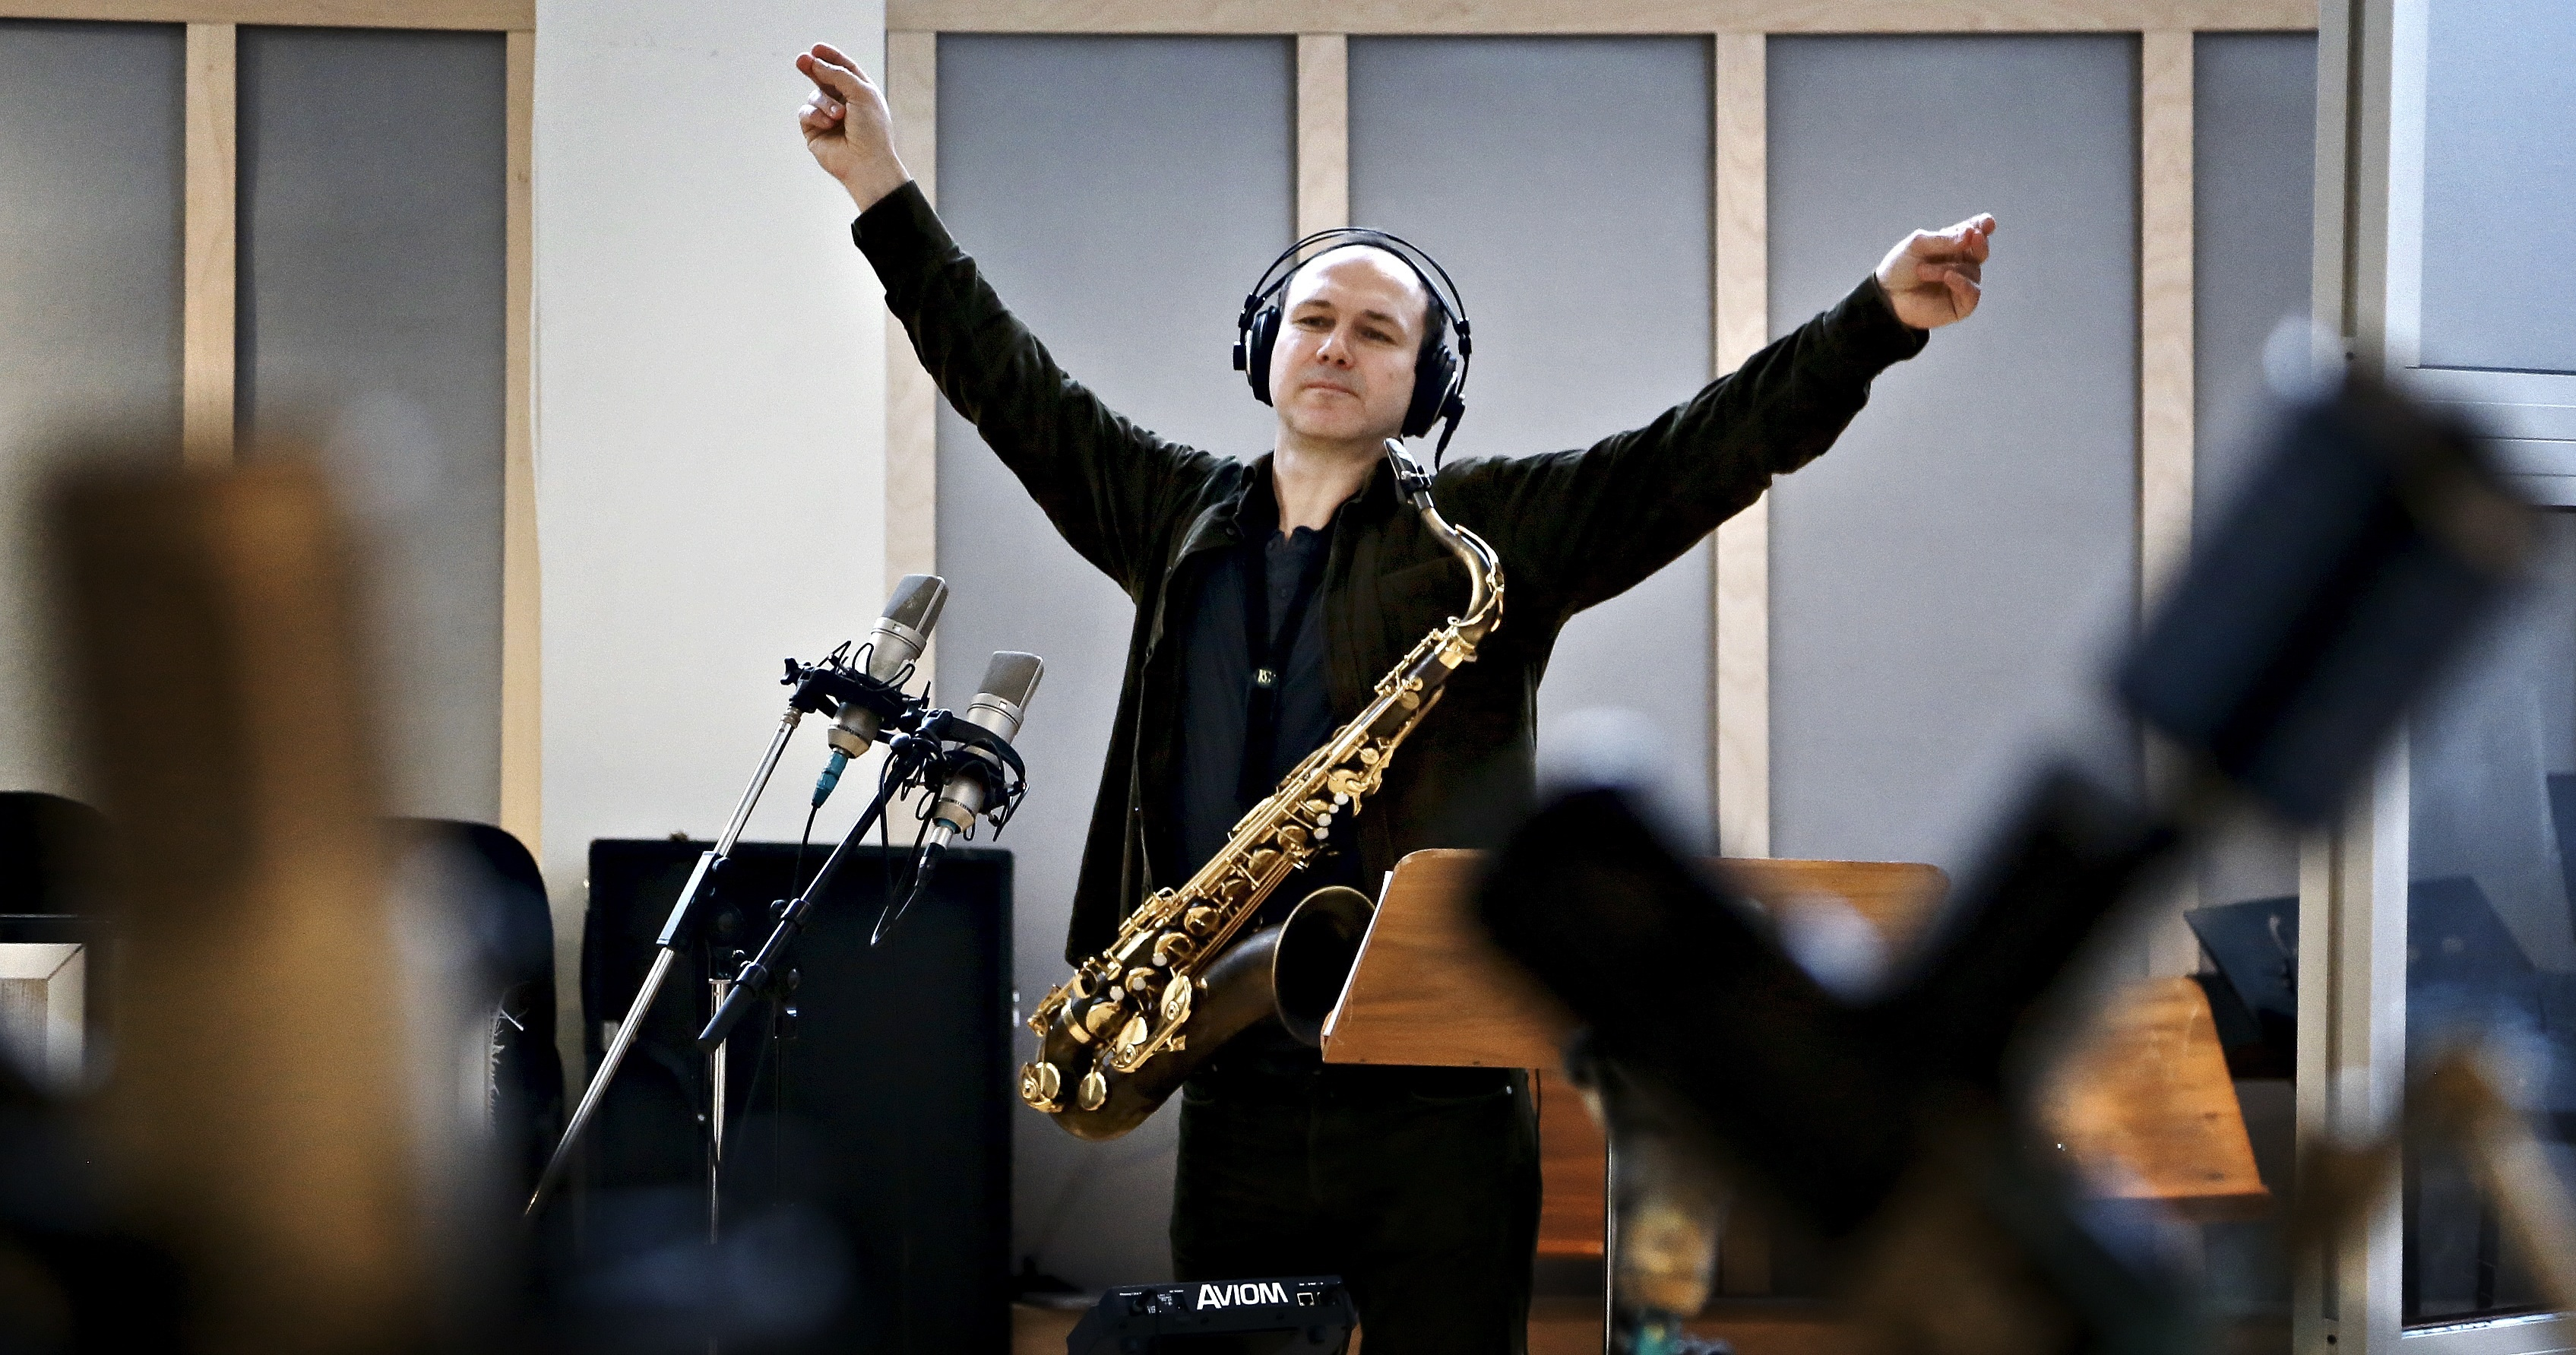 Bendik Hofseth during a 2013 Jazzcode recording at Rainbow Studio, Oslo, Norway.  Photo: Olav Olsen/Aftenposten